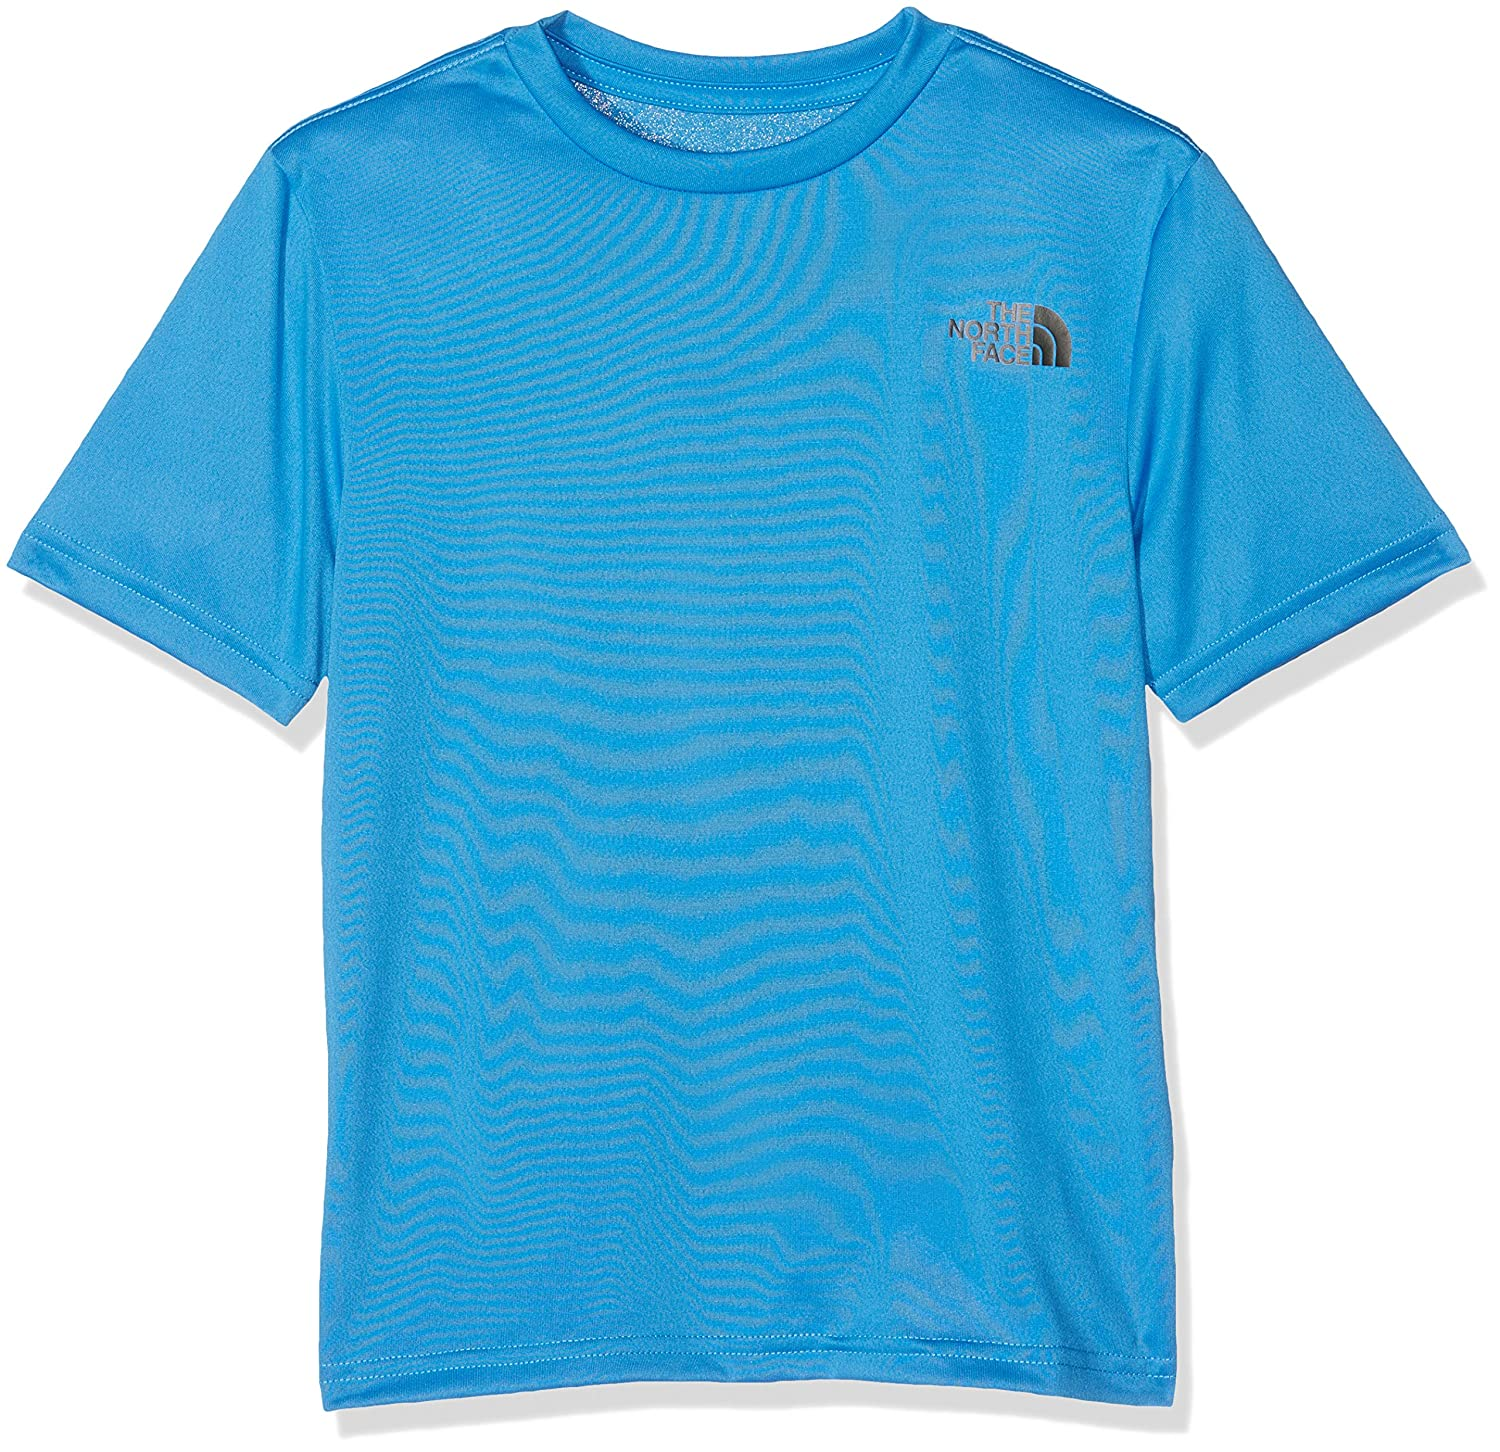 THE NORTH FACE B SS Reaxion tee Camiseta, Niños